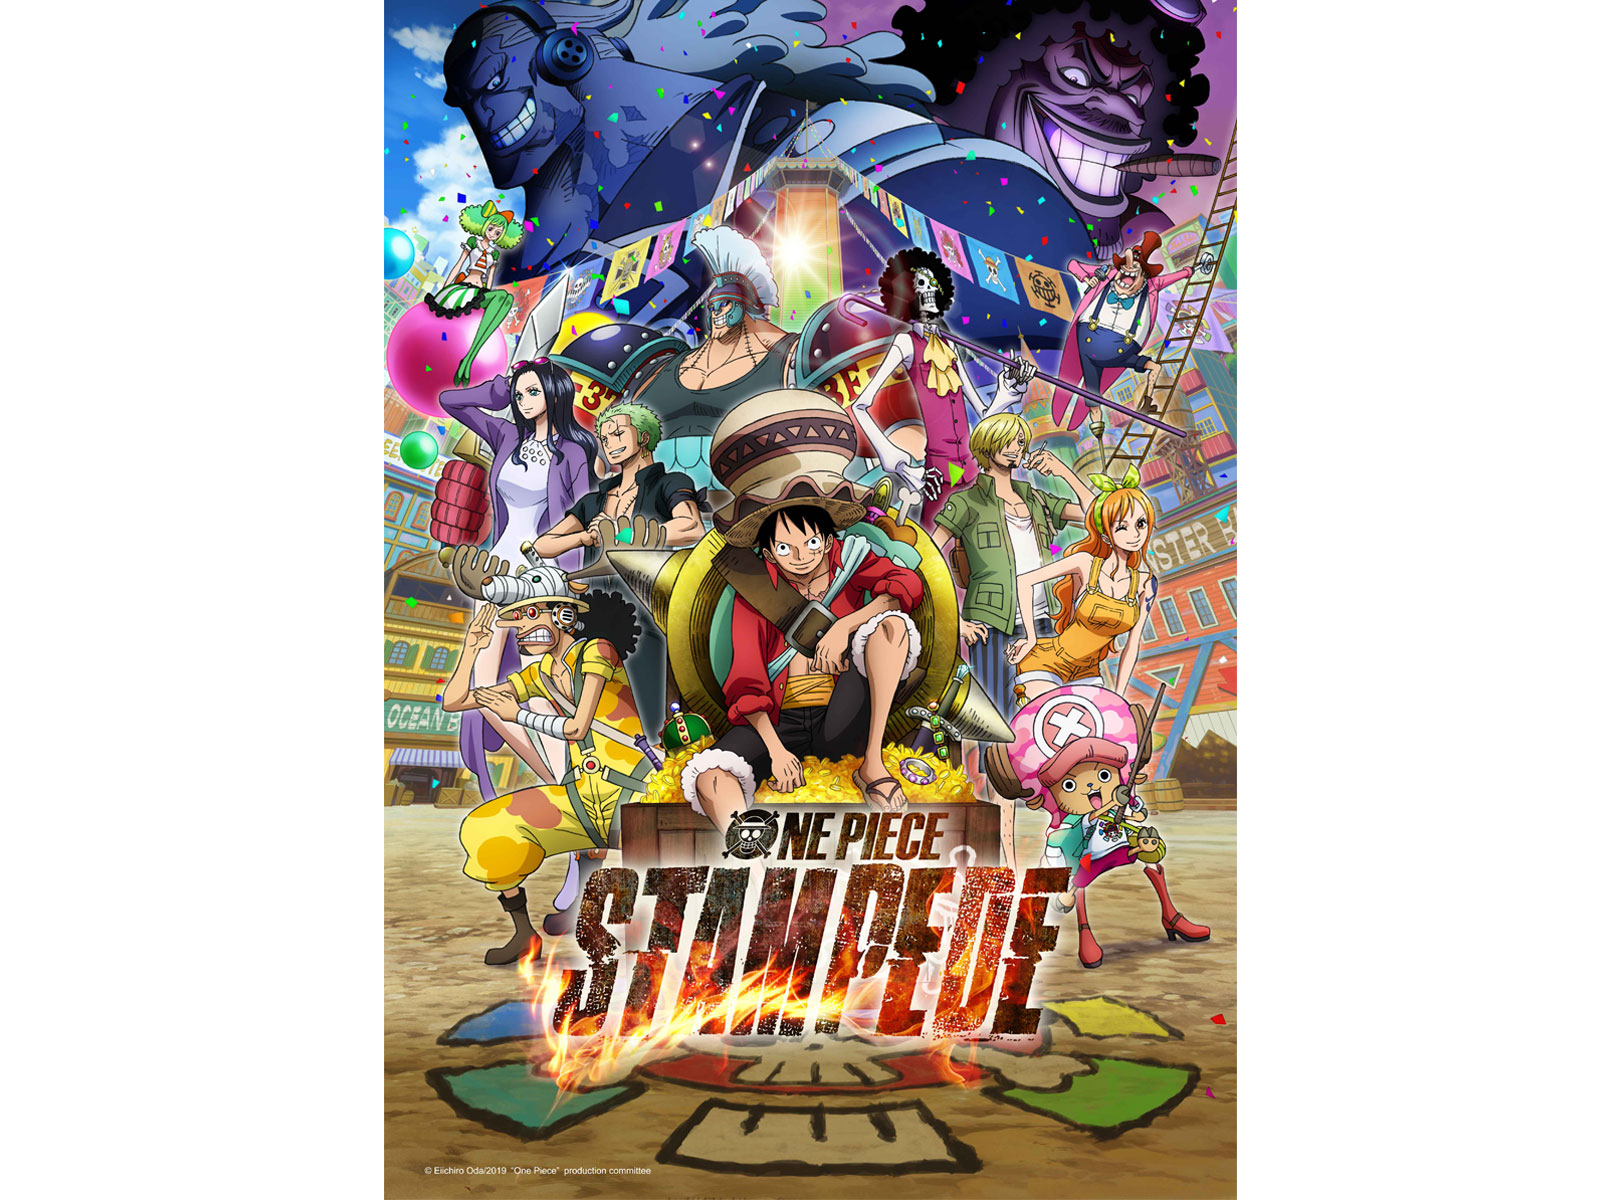 ONE PIECE: STAMPEDE WILL CHARGE INTO THEATERS THROUGHOUT THE U.S. & CANADA IN OCTOBER